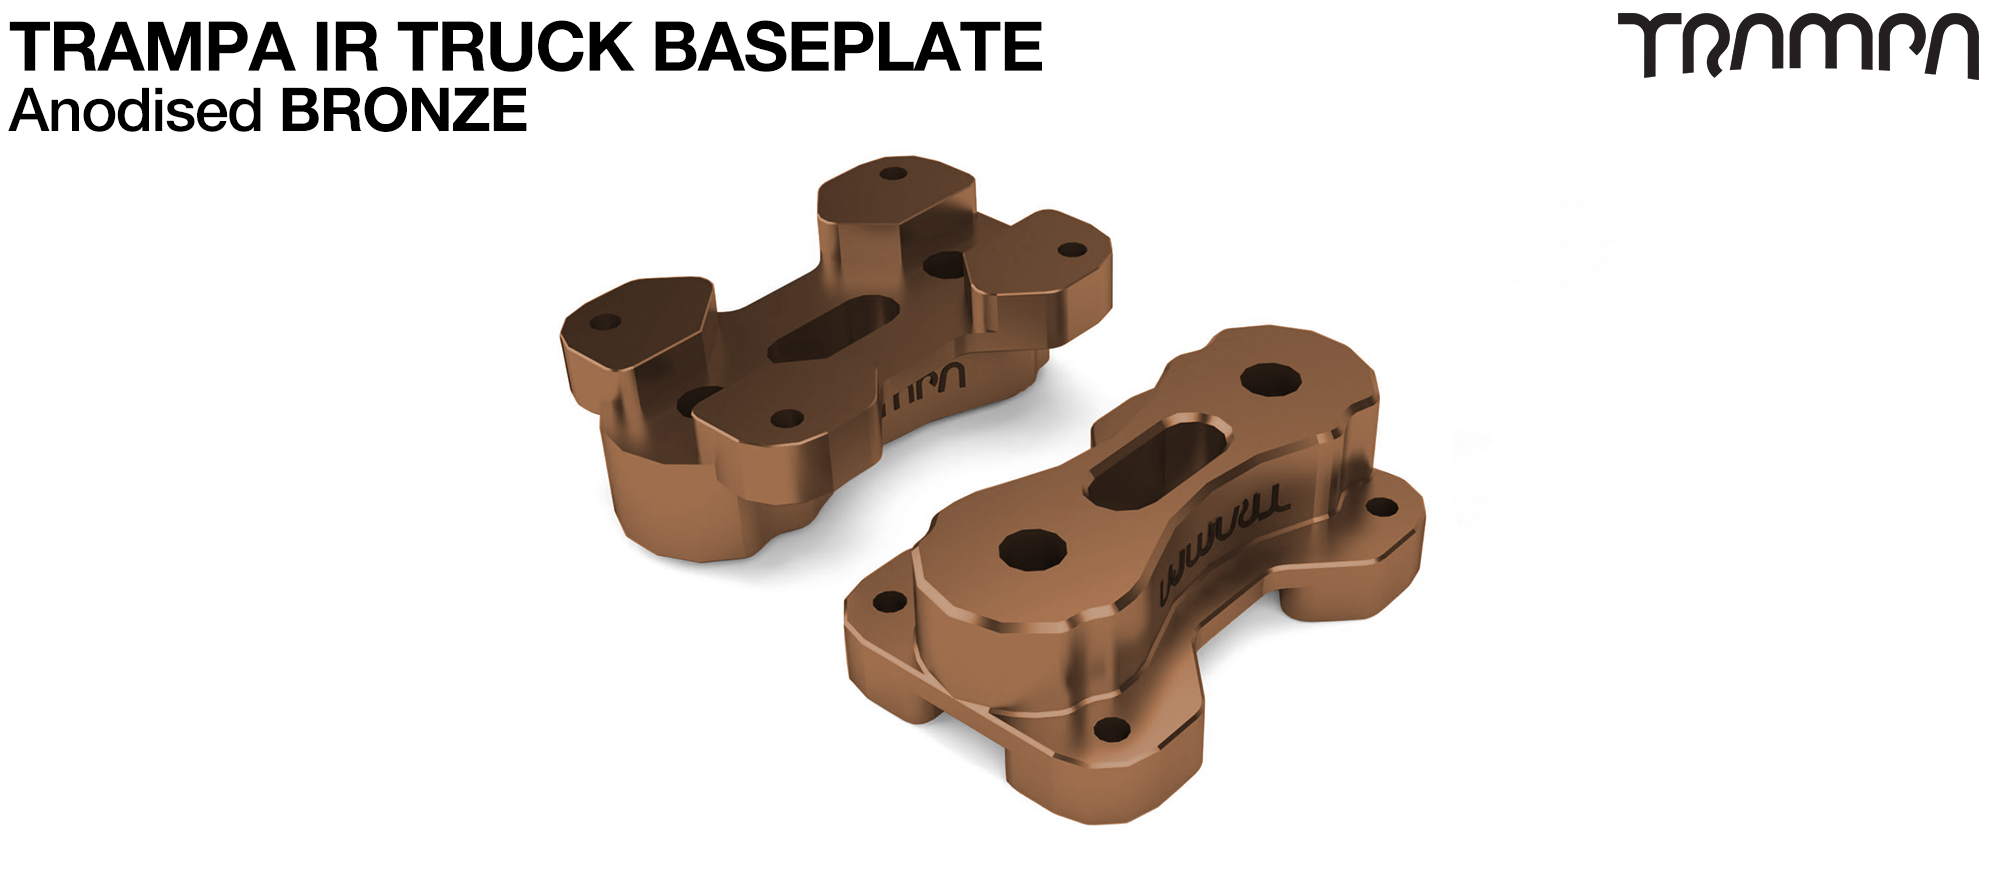 TRAMPA IR BASEPLATE - CNC Precision made TRAMPA IR Trucks are super light & Packed with performance - BRONZE